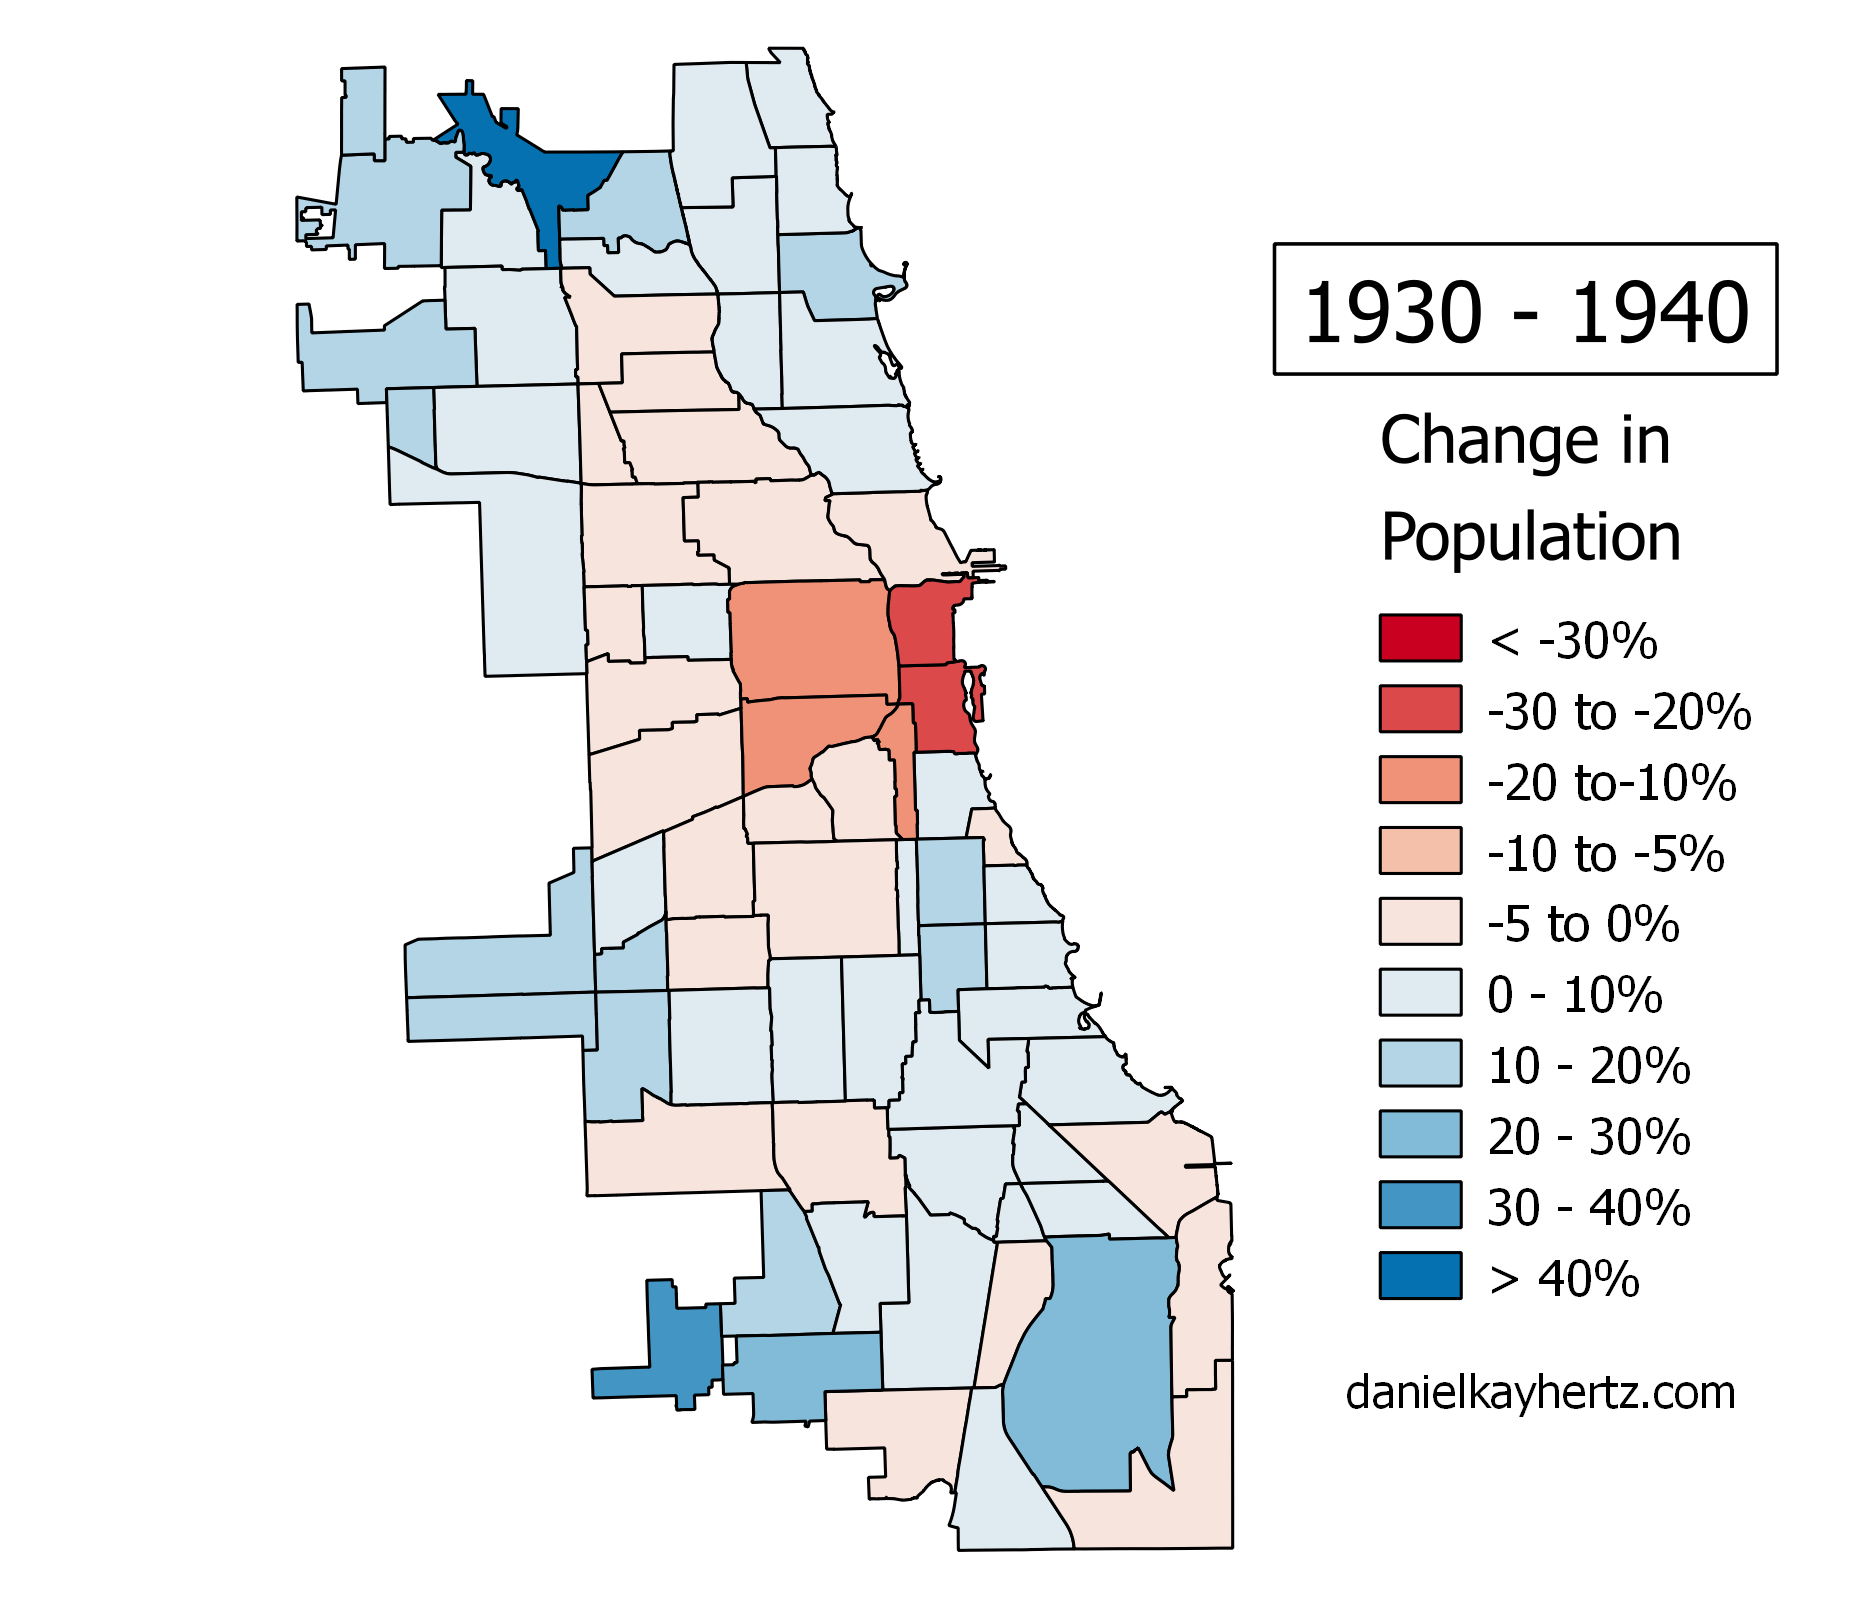 woodlawn hispanic singles Woodlawn oh demographics data with population from census shown with charts, graphs and text includes hispanic, race, citizenship, births and singles.